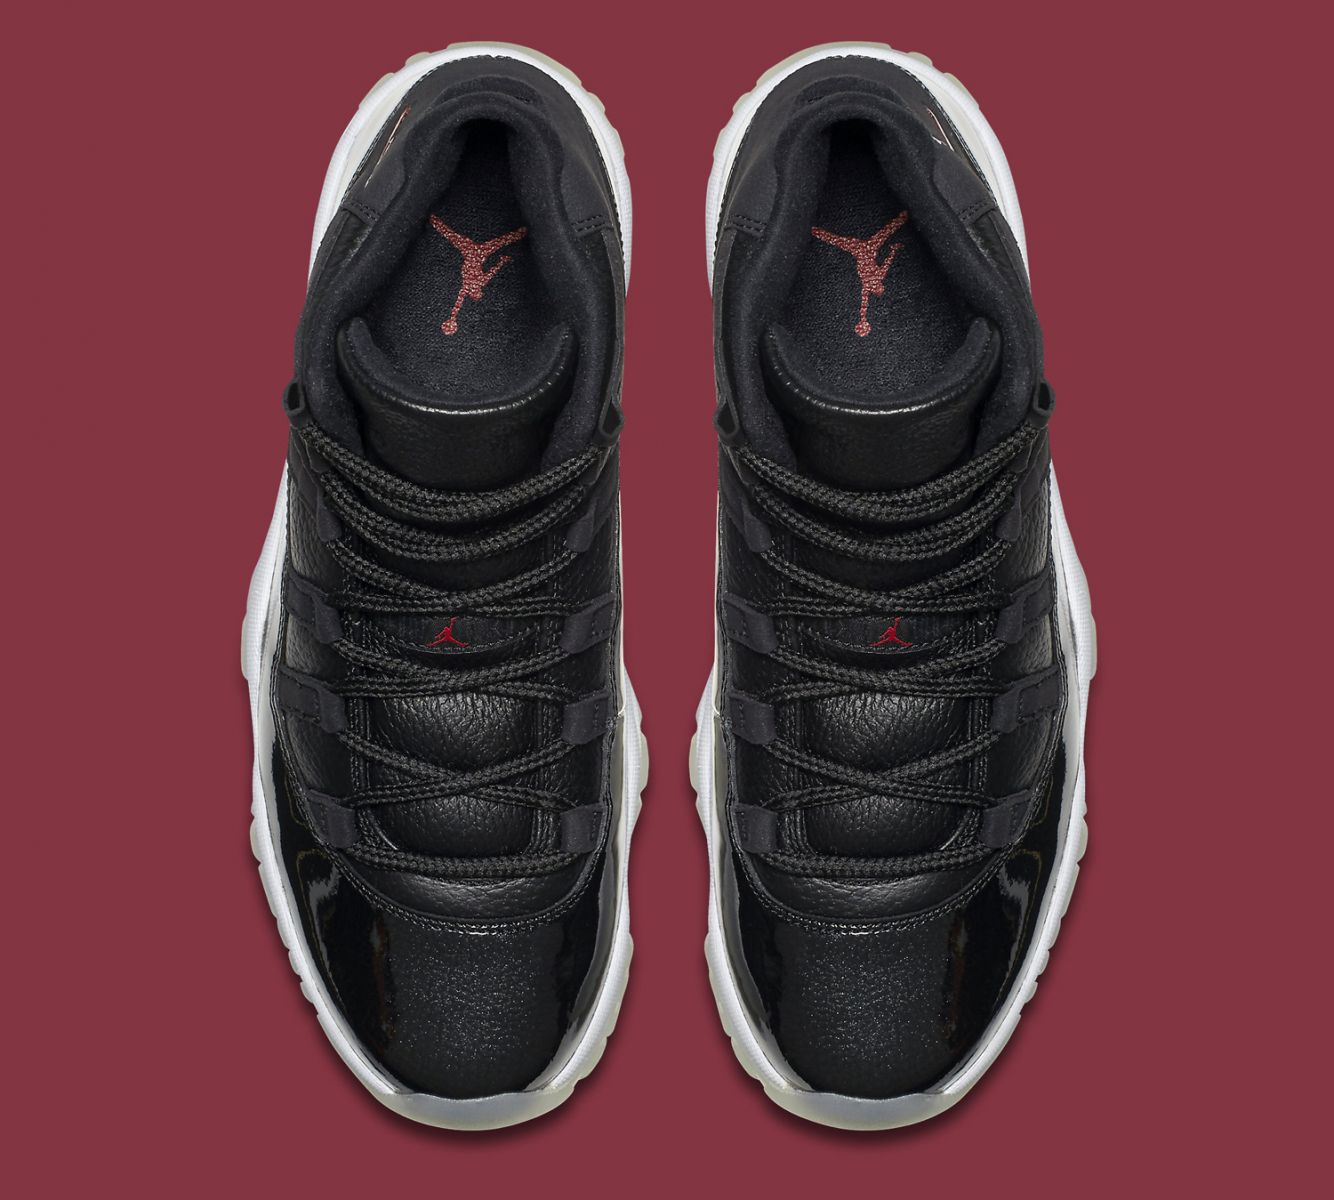 70d9fee321112c Retailers Sold Over a Million Pairs of  72-10  Air Jordan 11s